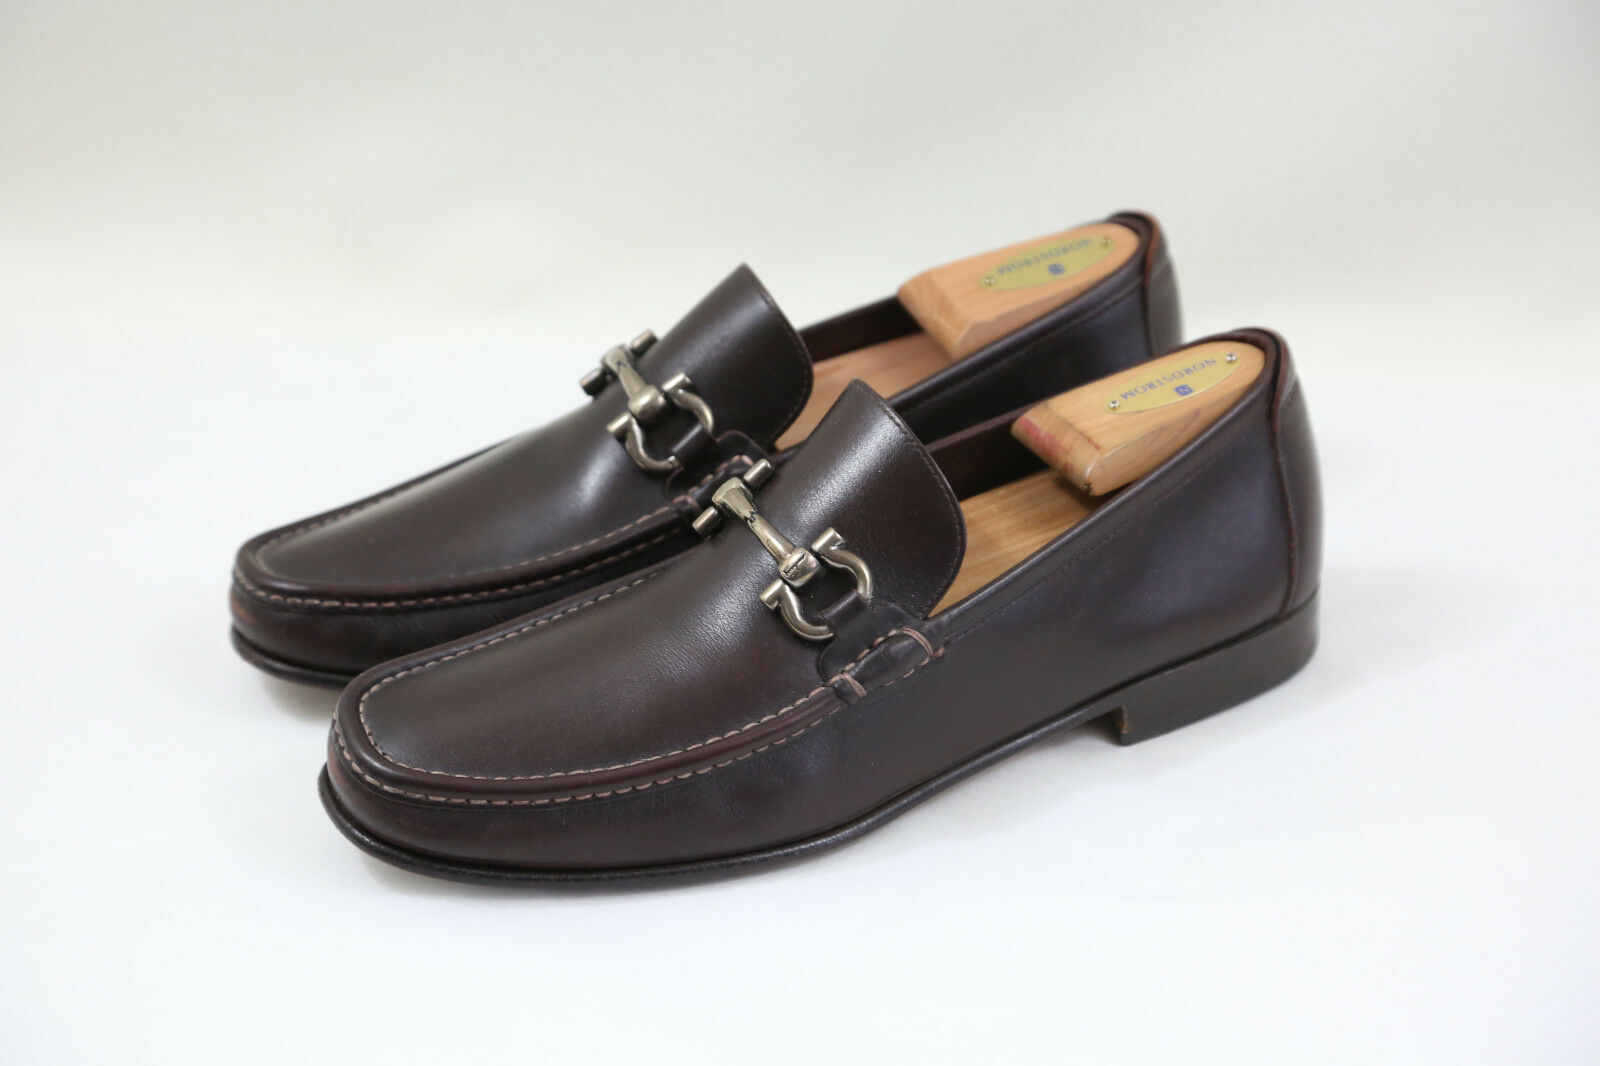 6 SALVATORE FERRAGAMO 'Giordano' 'Giordano' 'Giordano' Brown Leather Drivers Size 8.5 EE  MSRP  595 c7aa2d